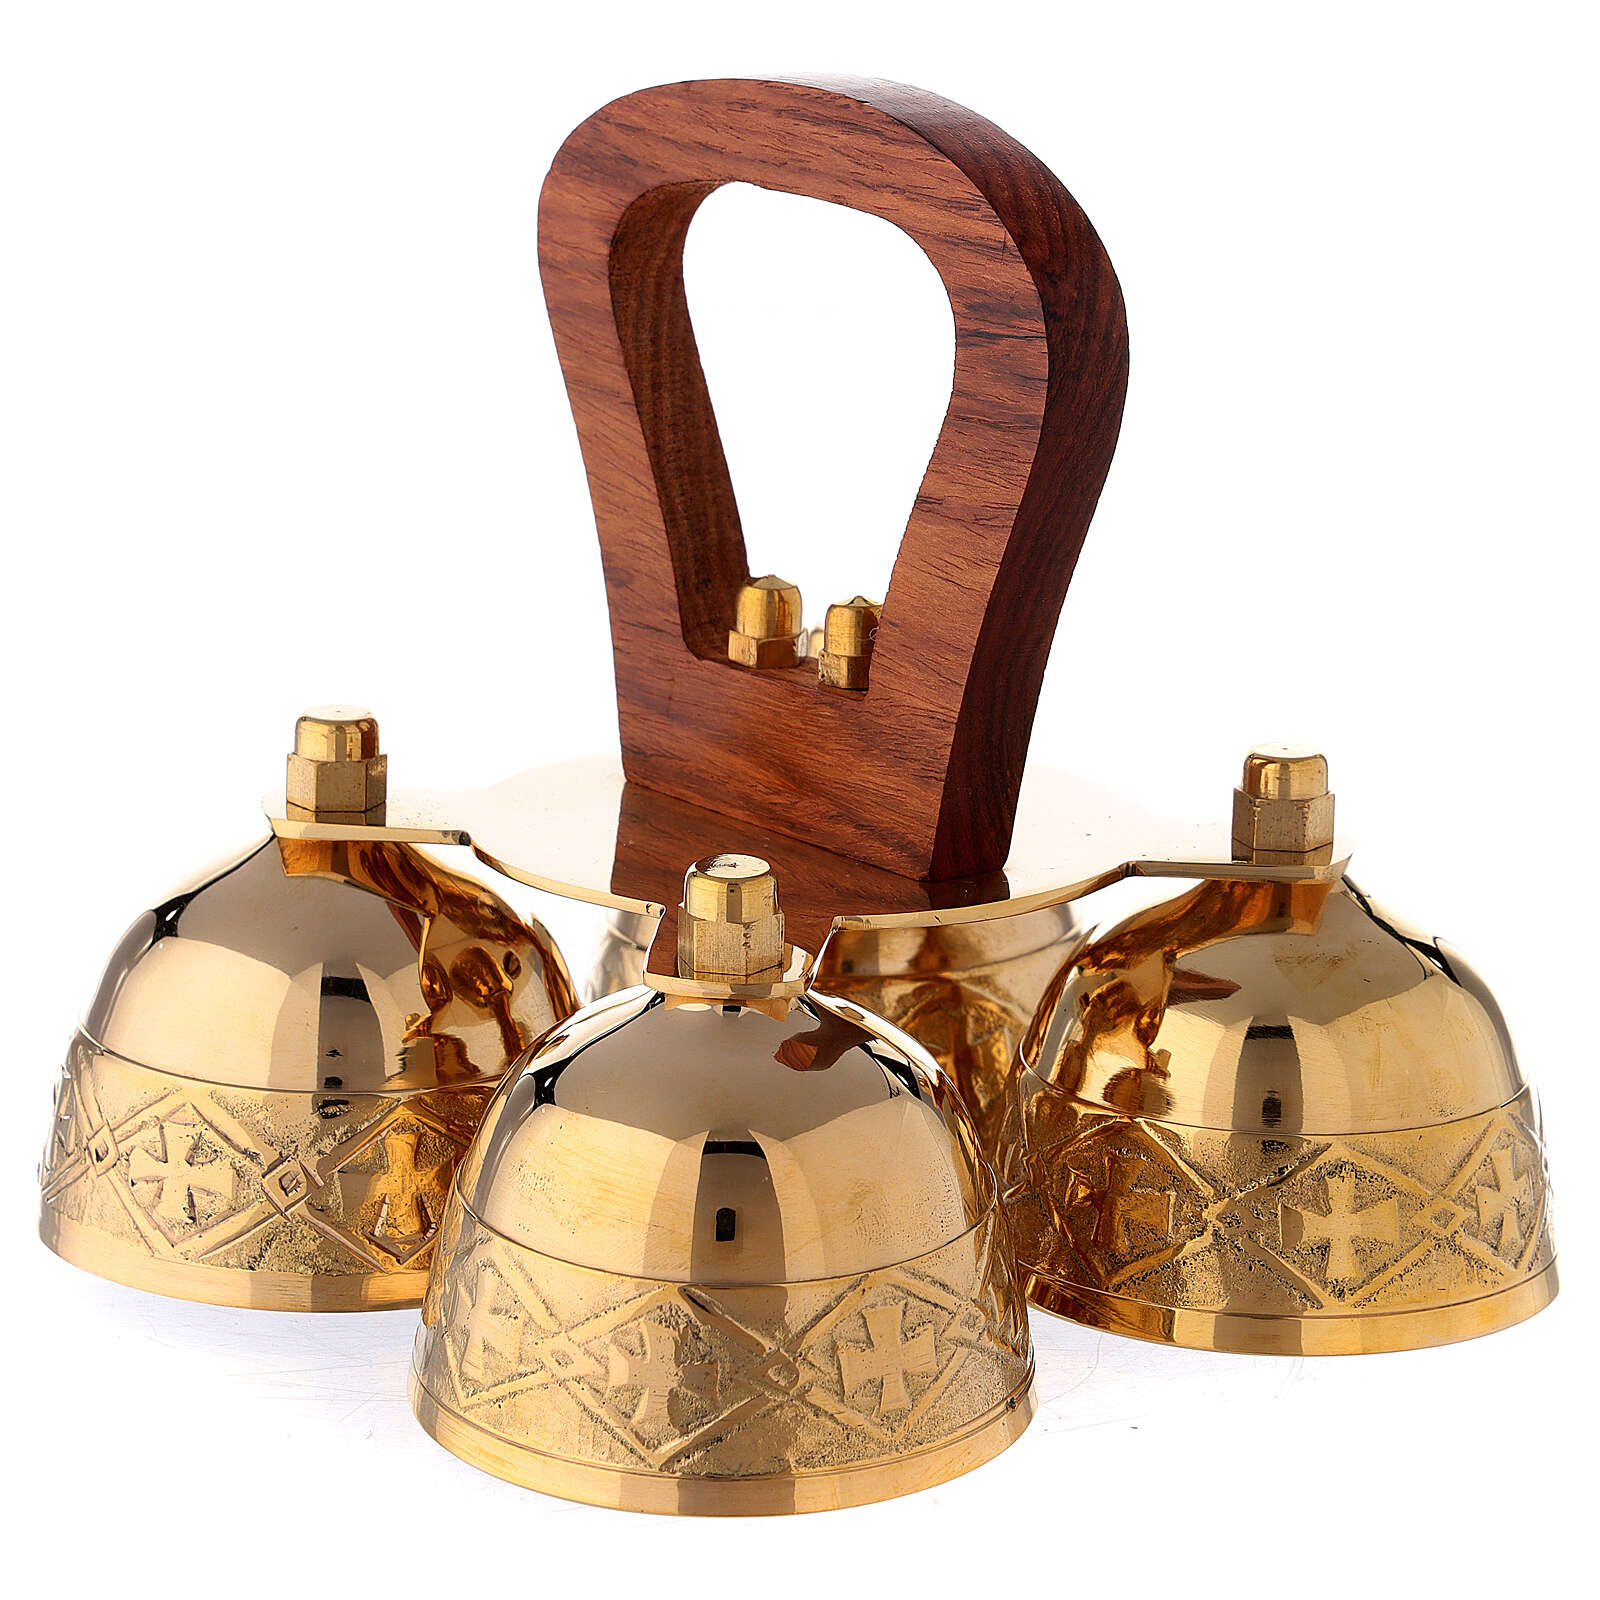 Liturgical bell 4 tons brass and wood handle 3